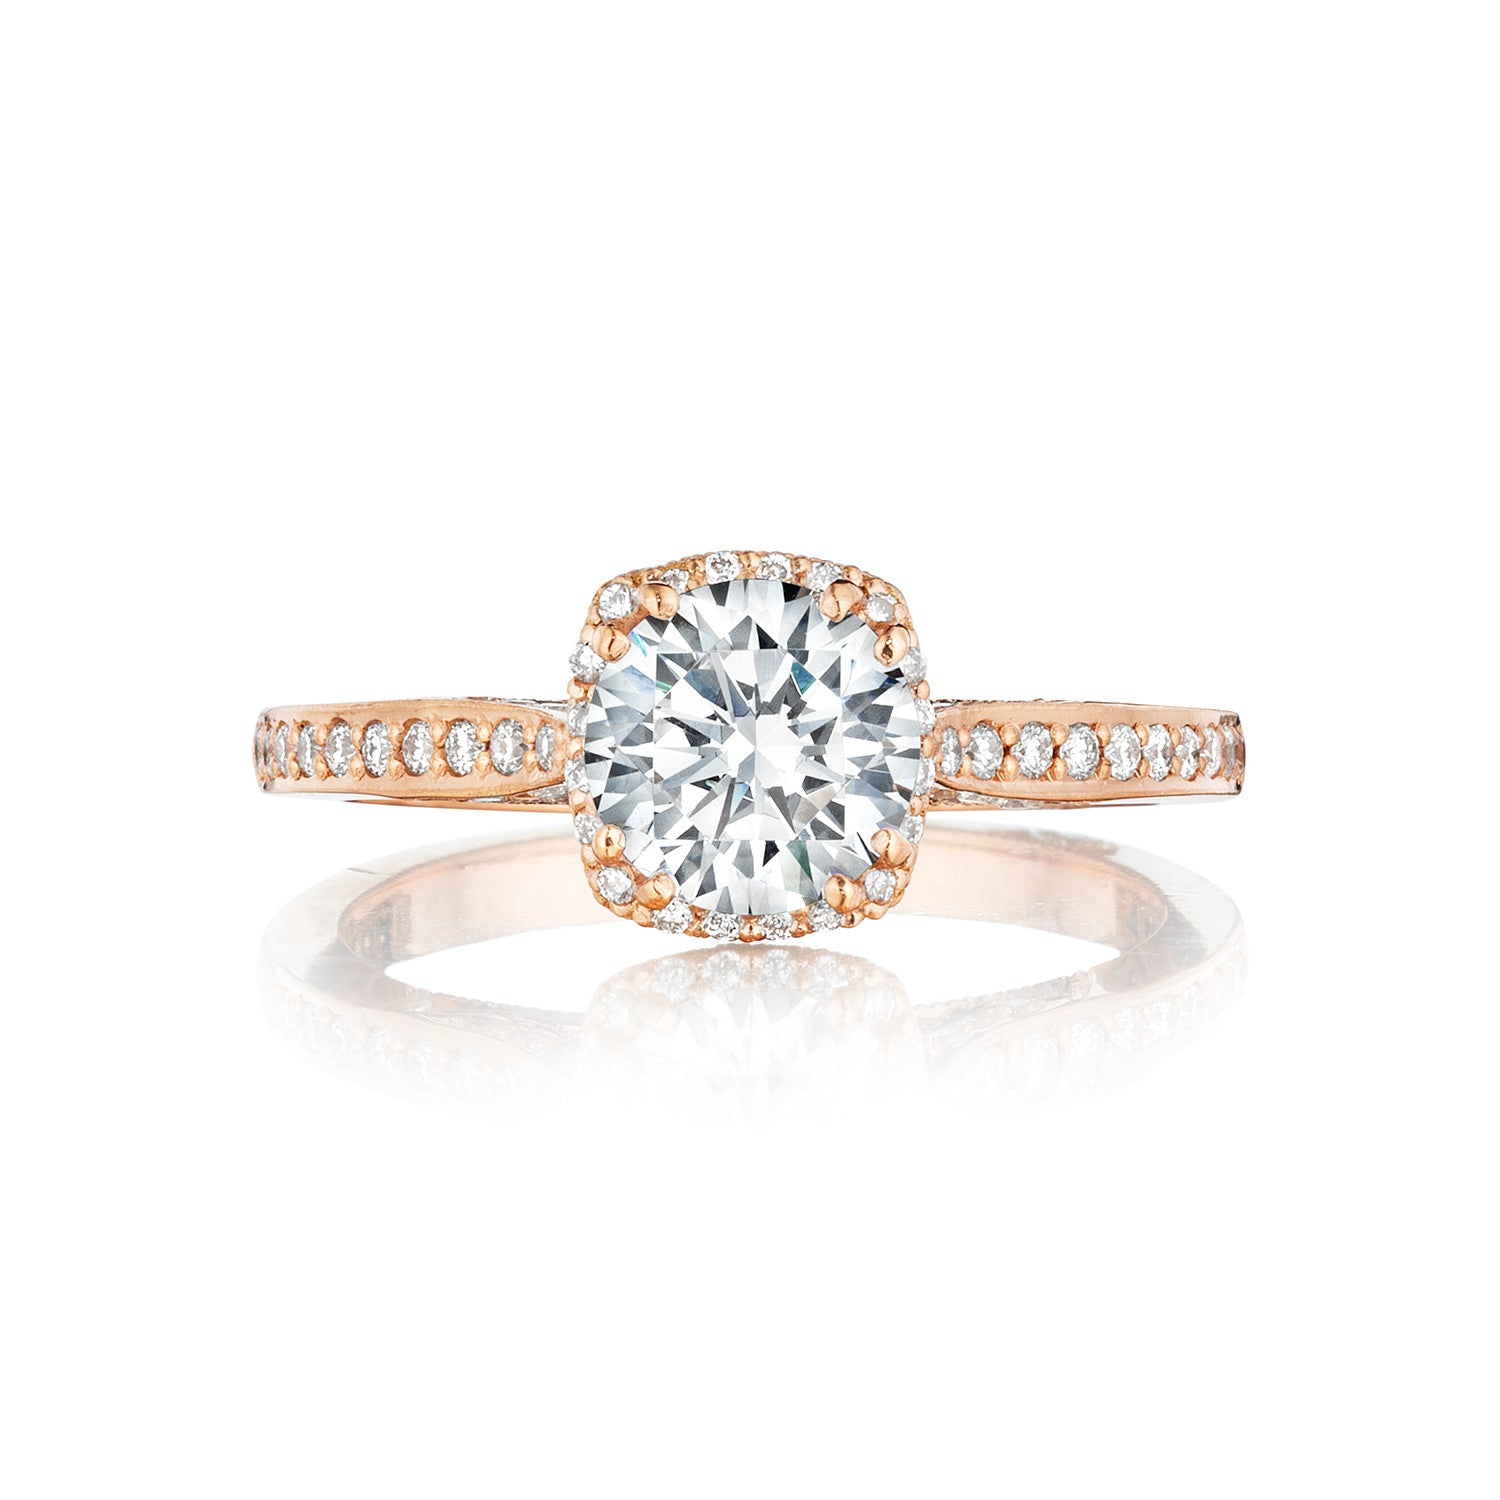 in ring jewellery product cluster rings pink white rose gold set engagement diamond